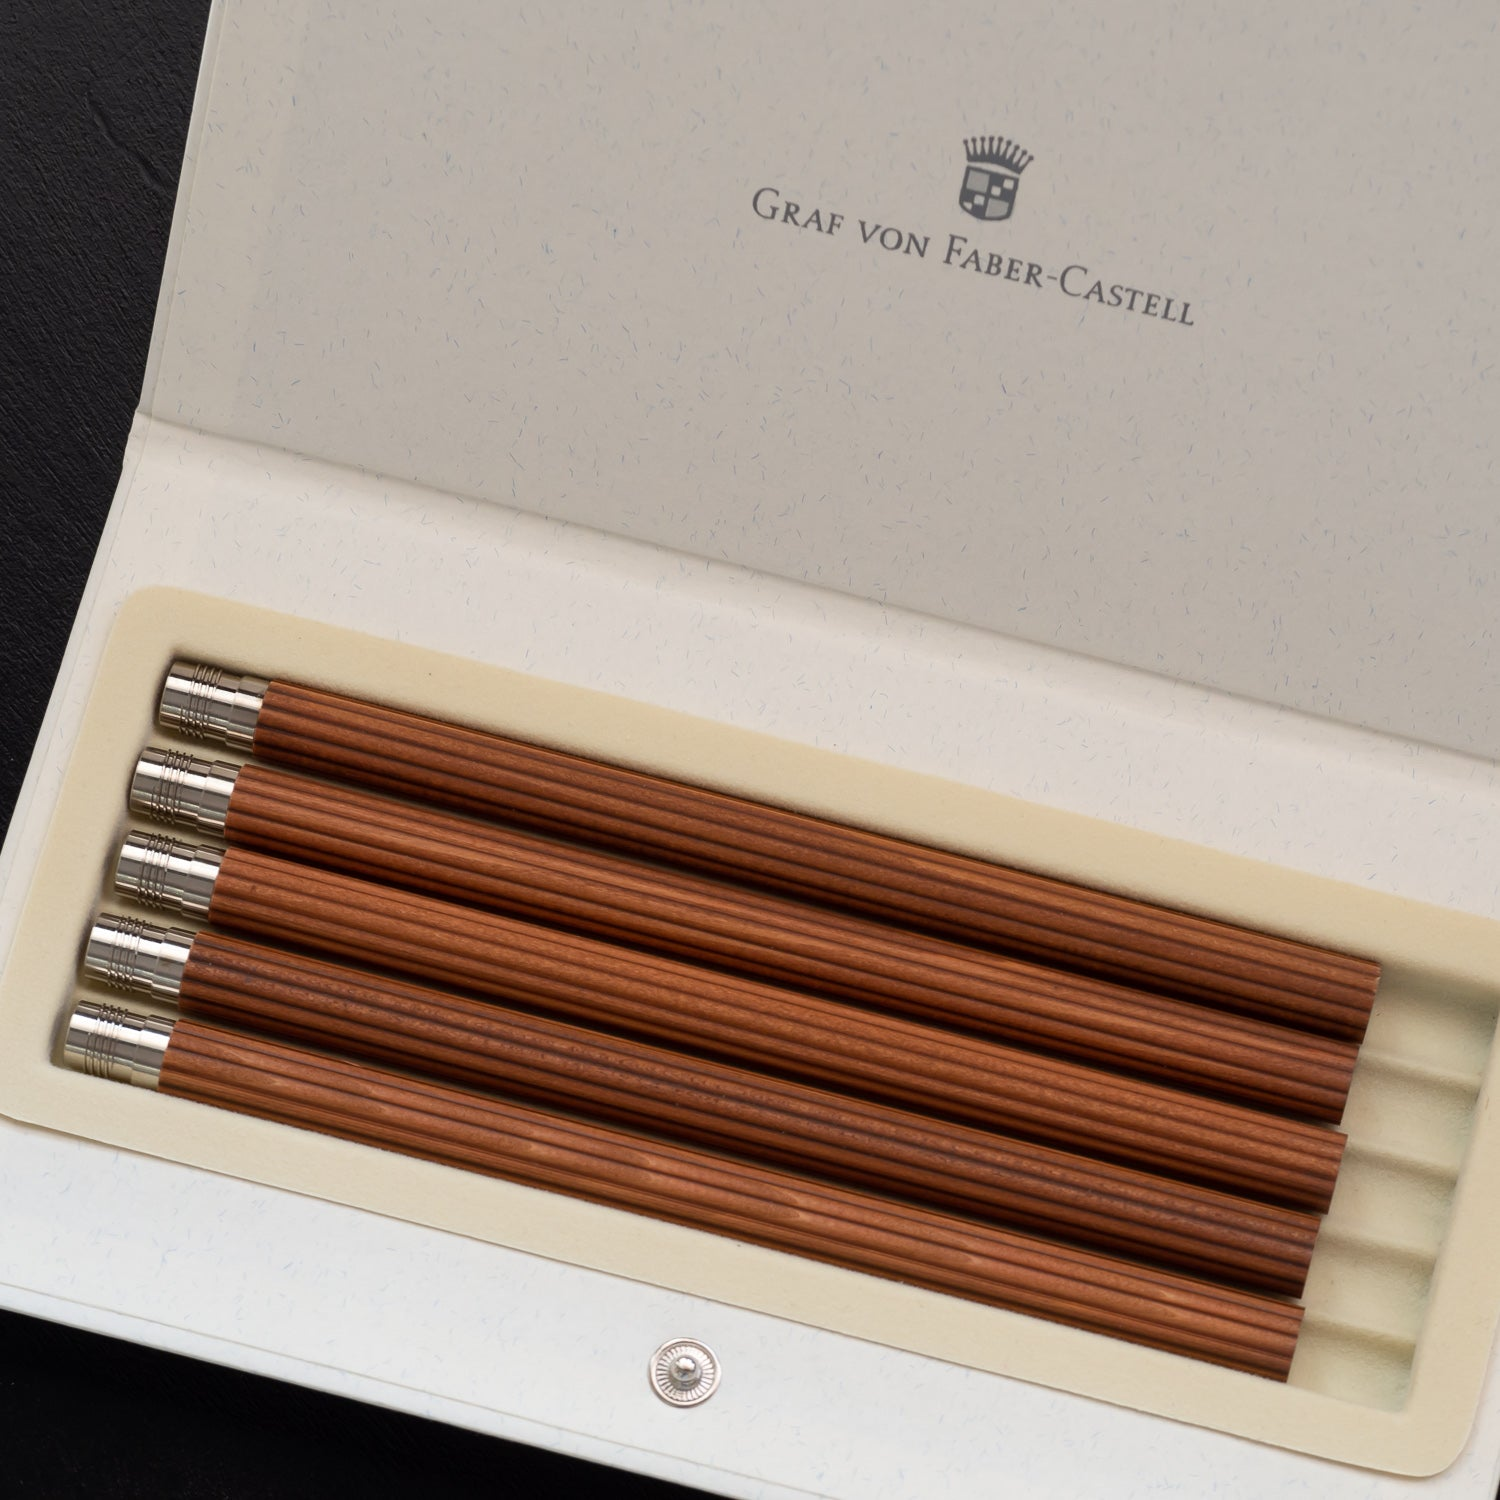 Graf von Faber-Castell Perfect Pencil Refill Set - Brown